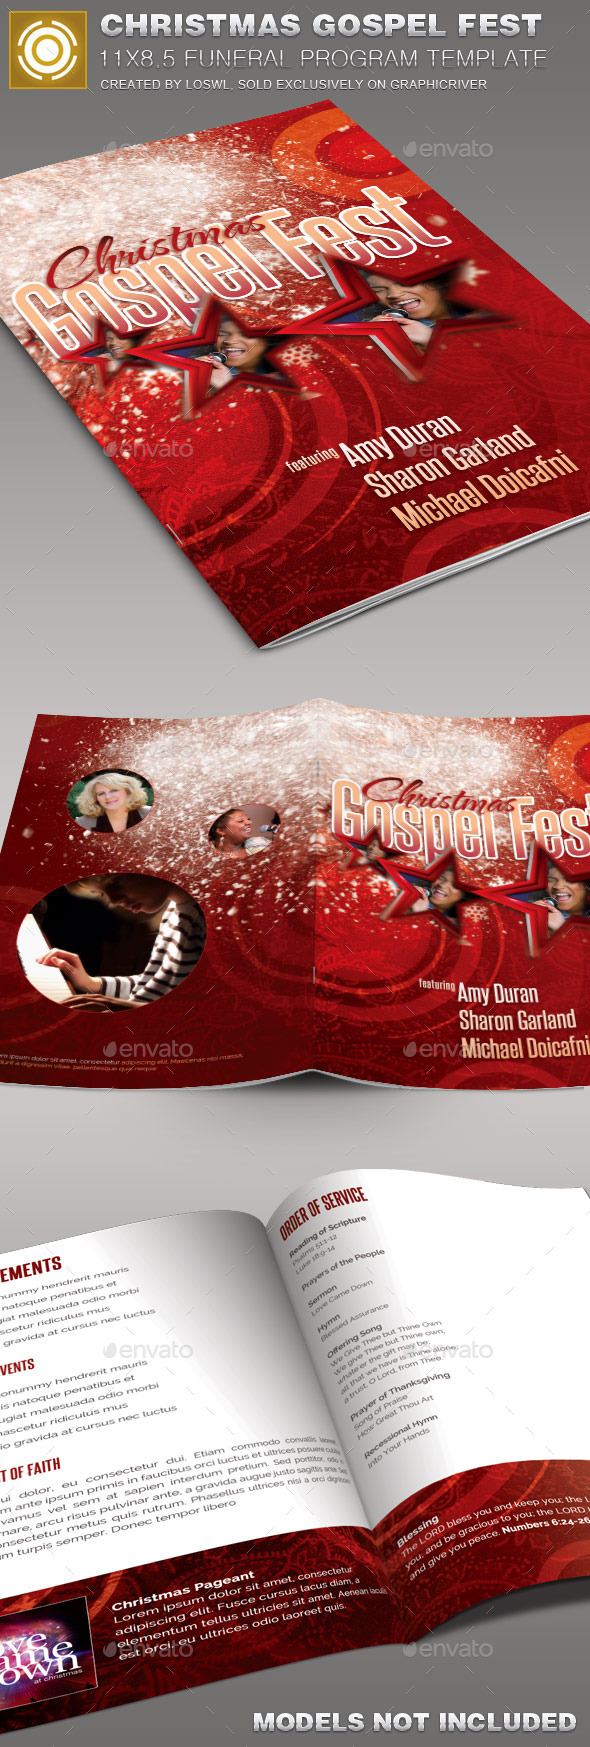 GraphicRiver Christmas Gospel Fest Church Bulletin Template 10090799